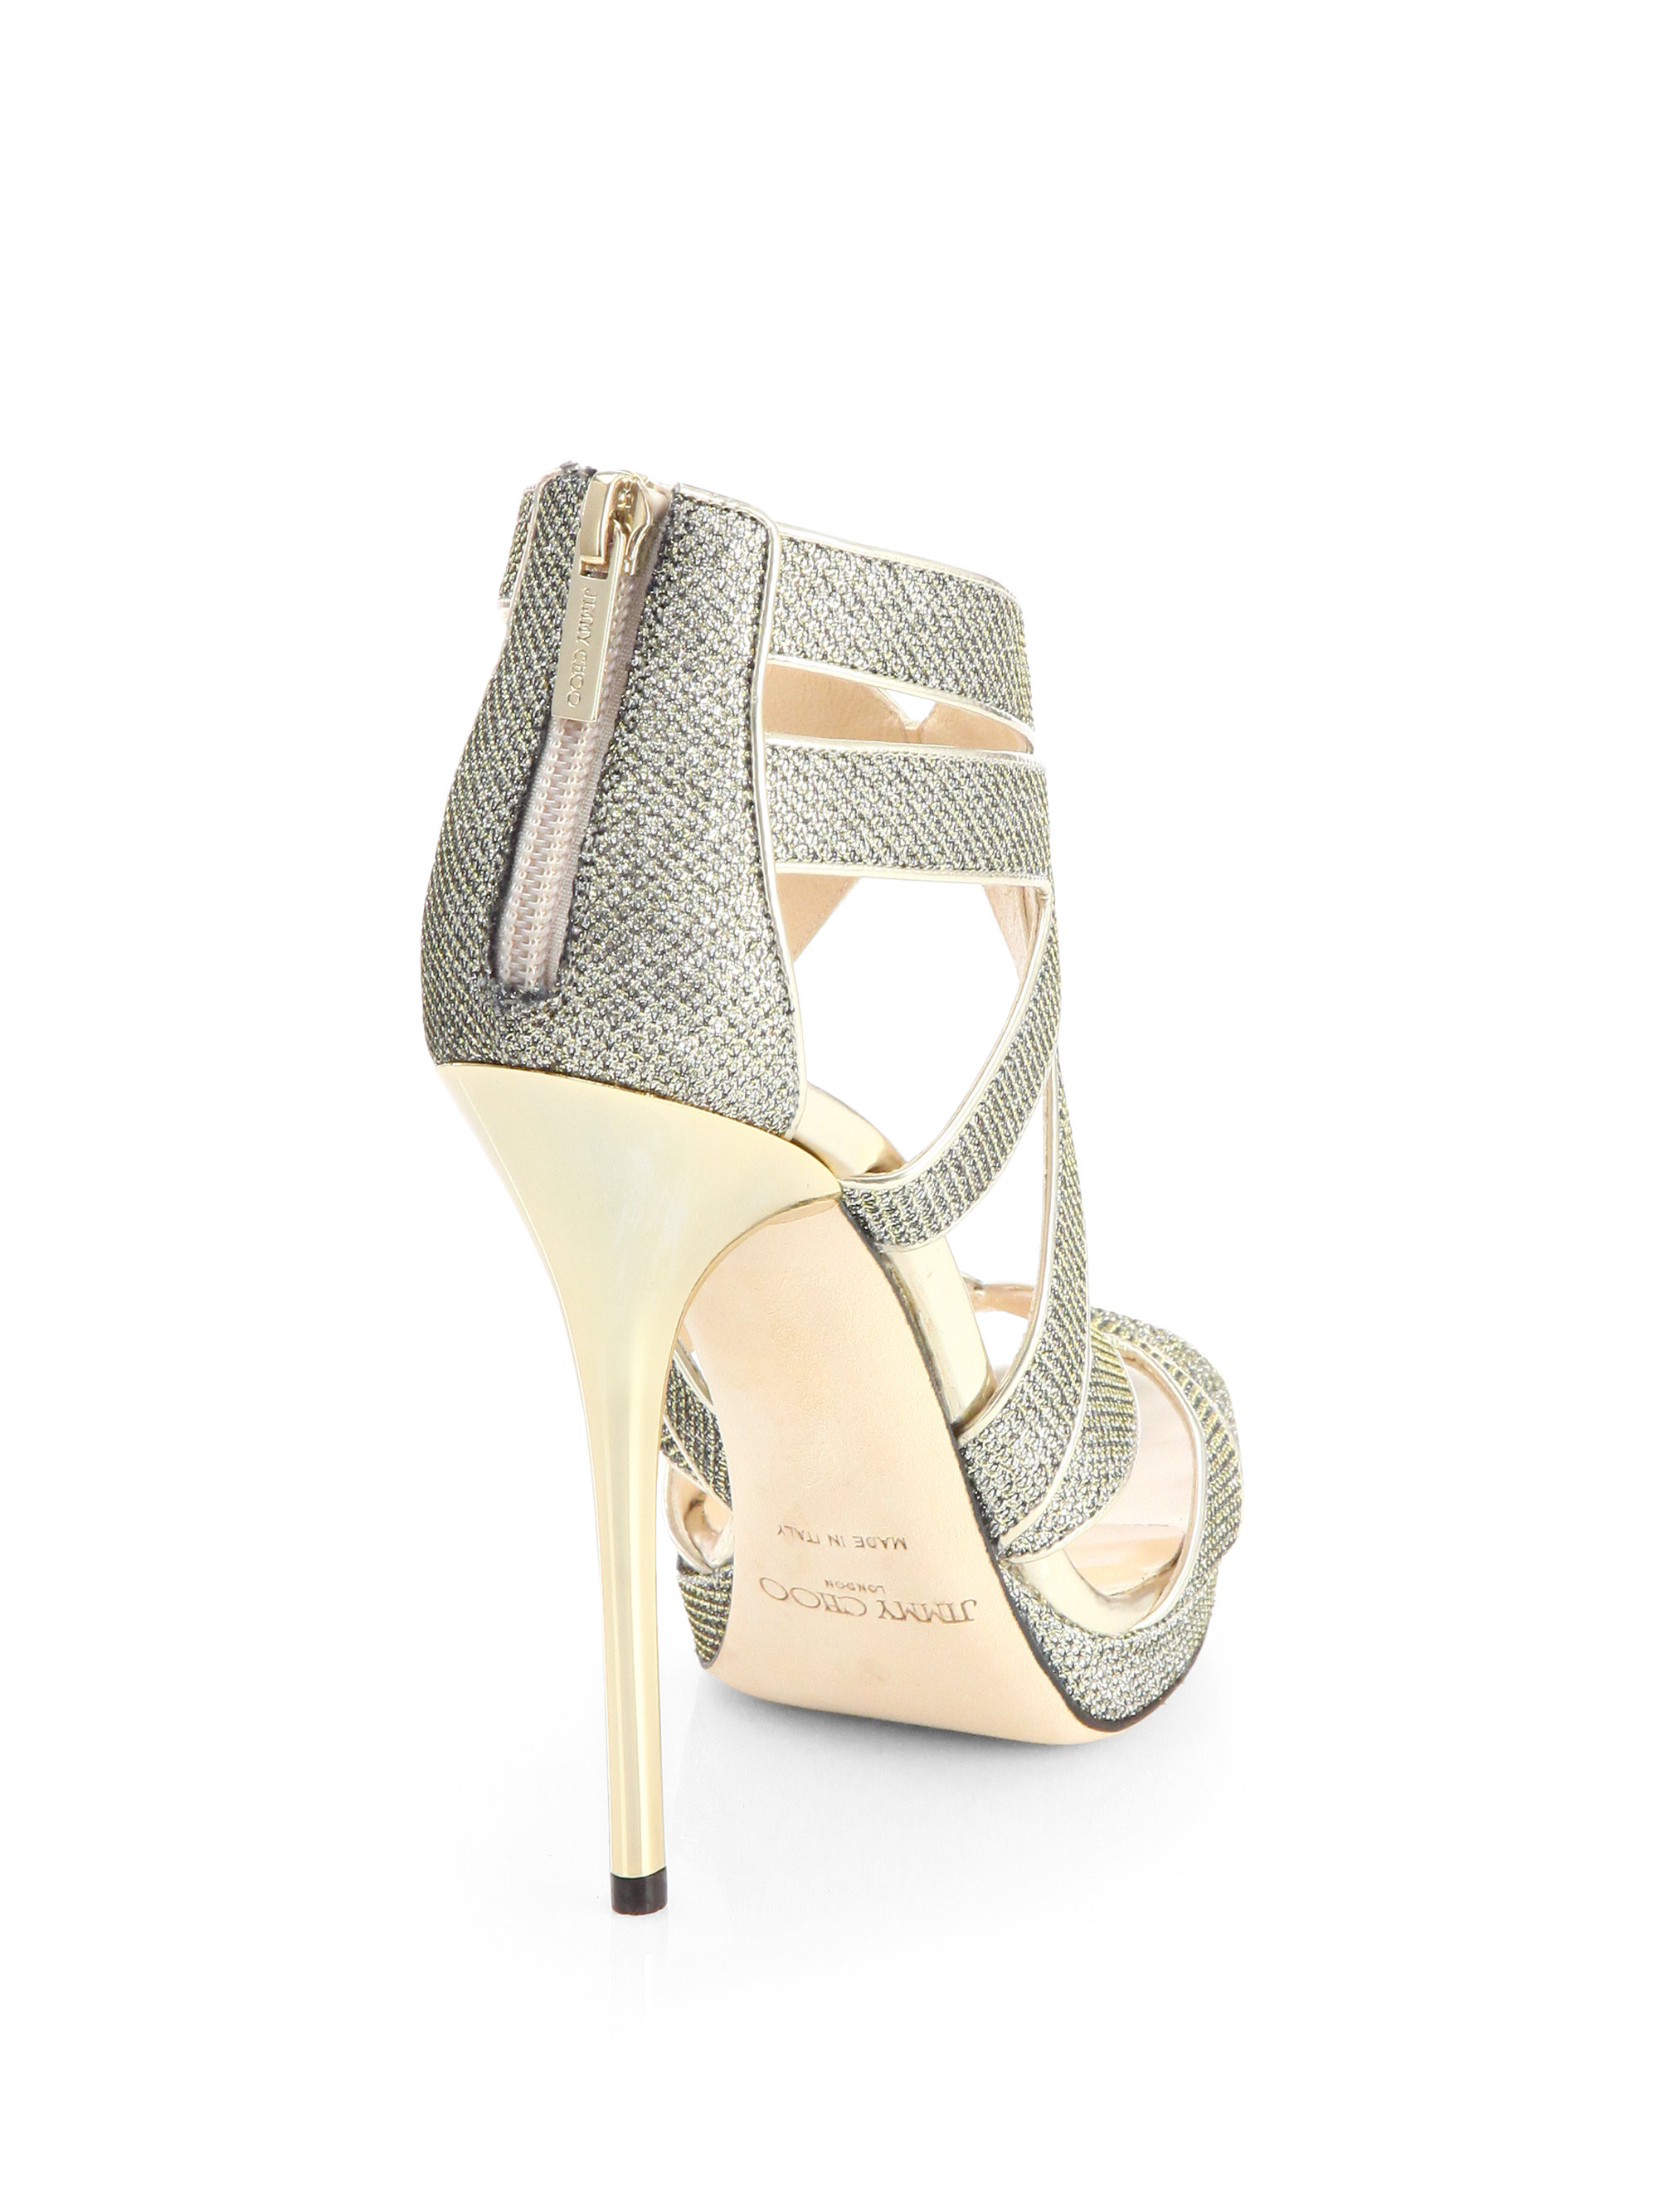 Jimmy Choo Lame Cage Sandals shopping online outlet sale MjVXDso2